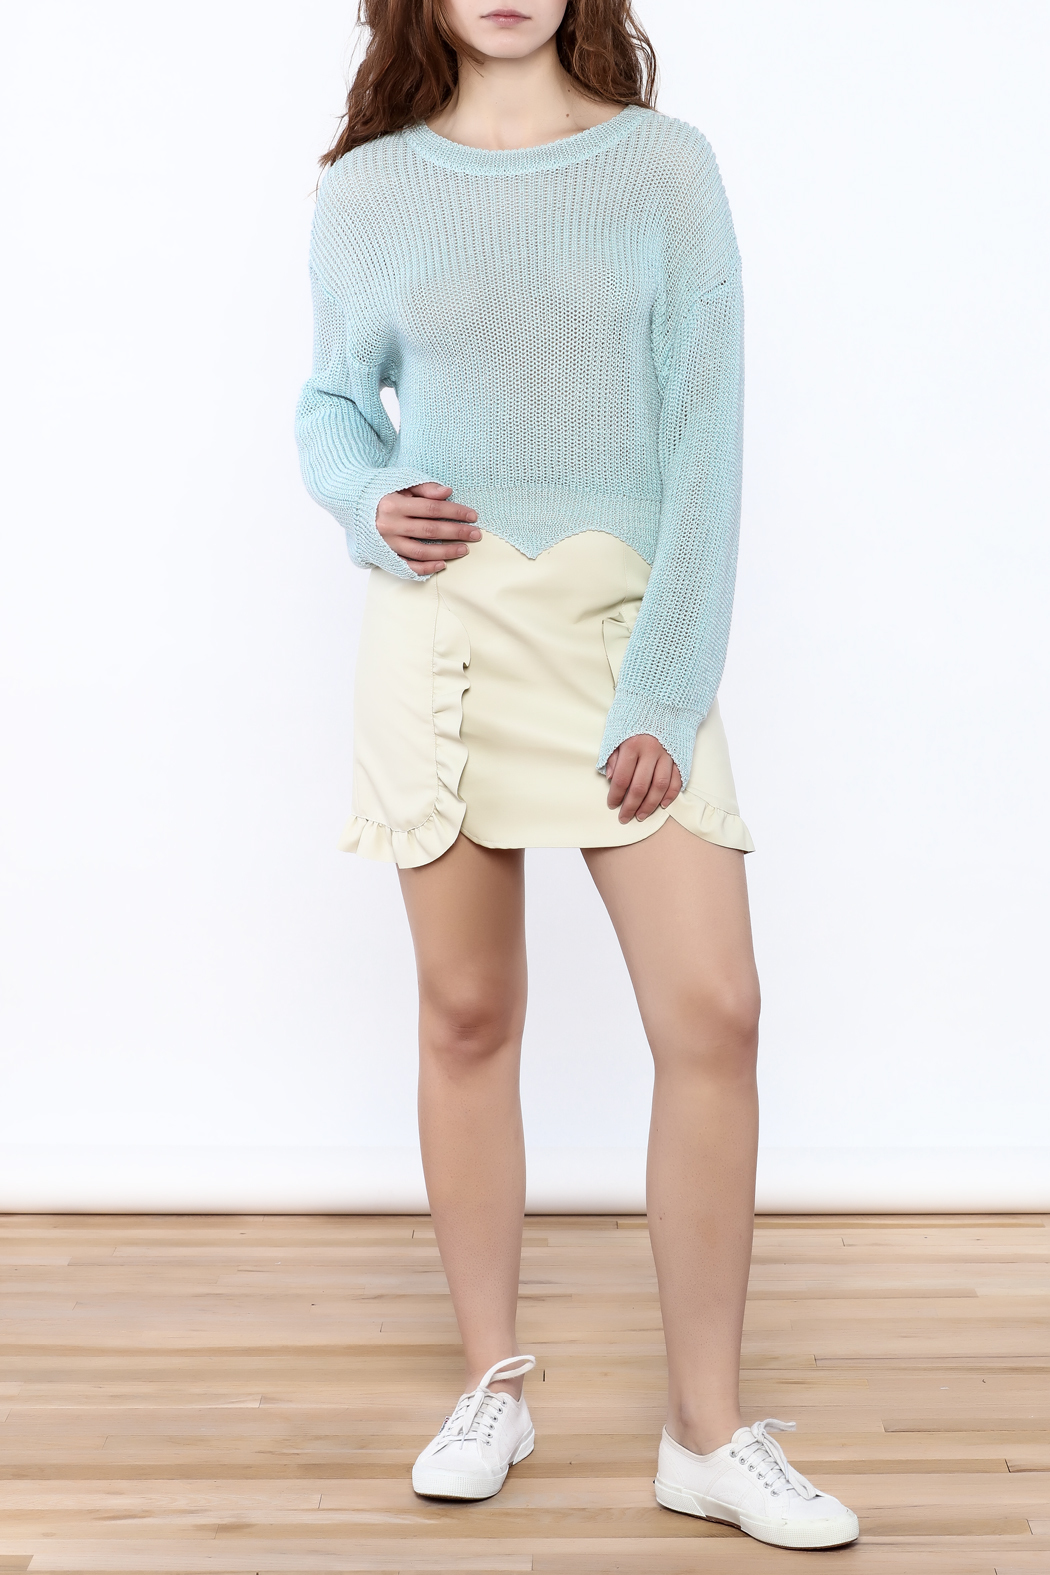 Pinkyotto Edgy Cropped Light Sweater - Front Full Image